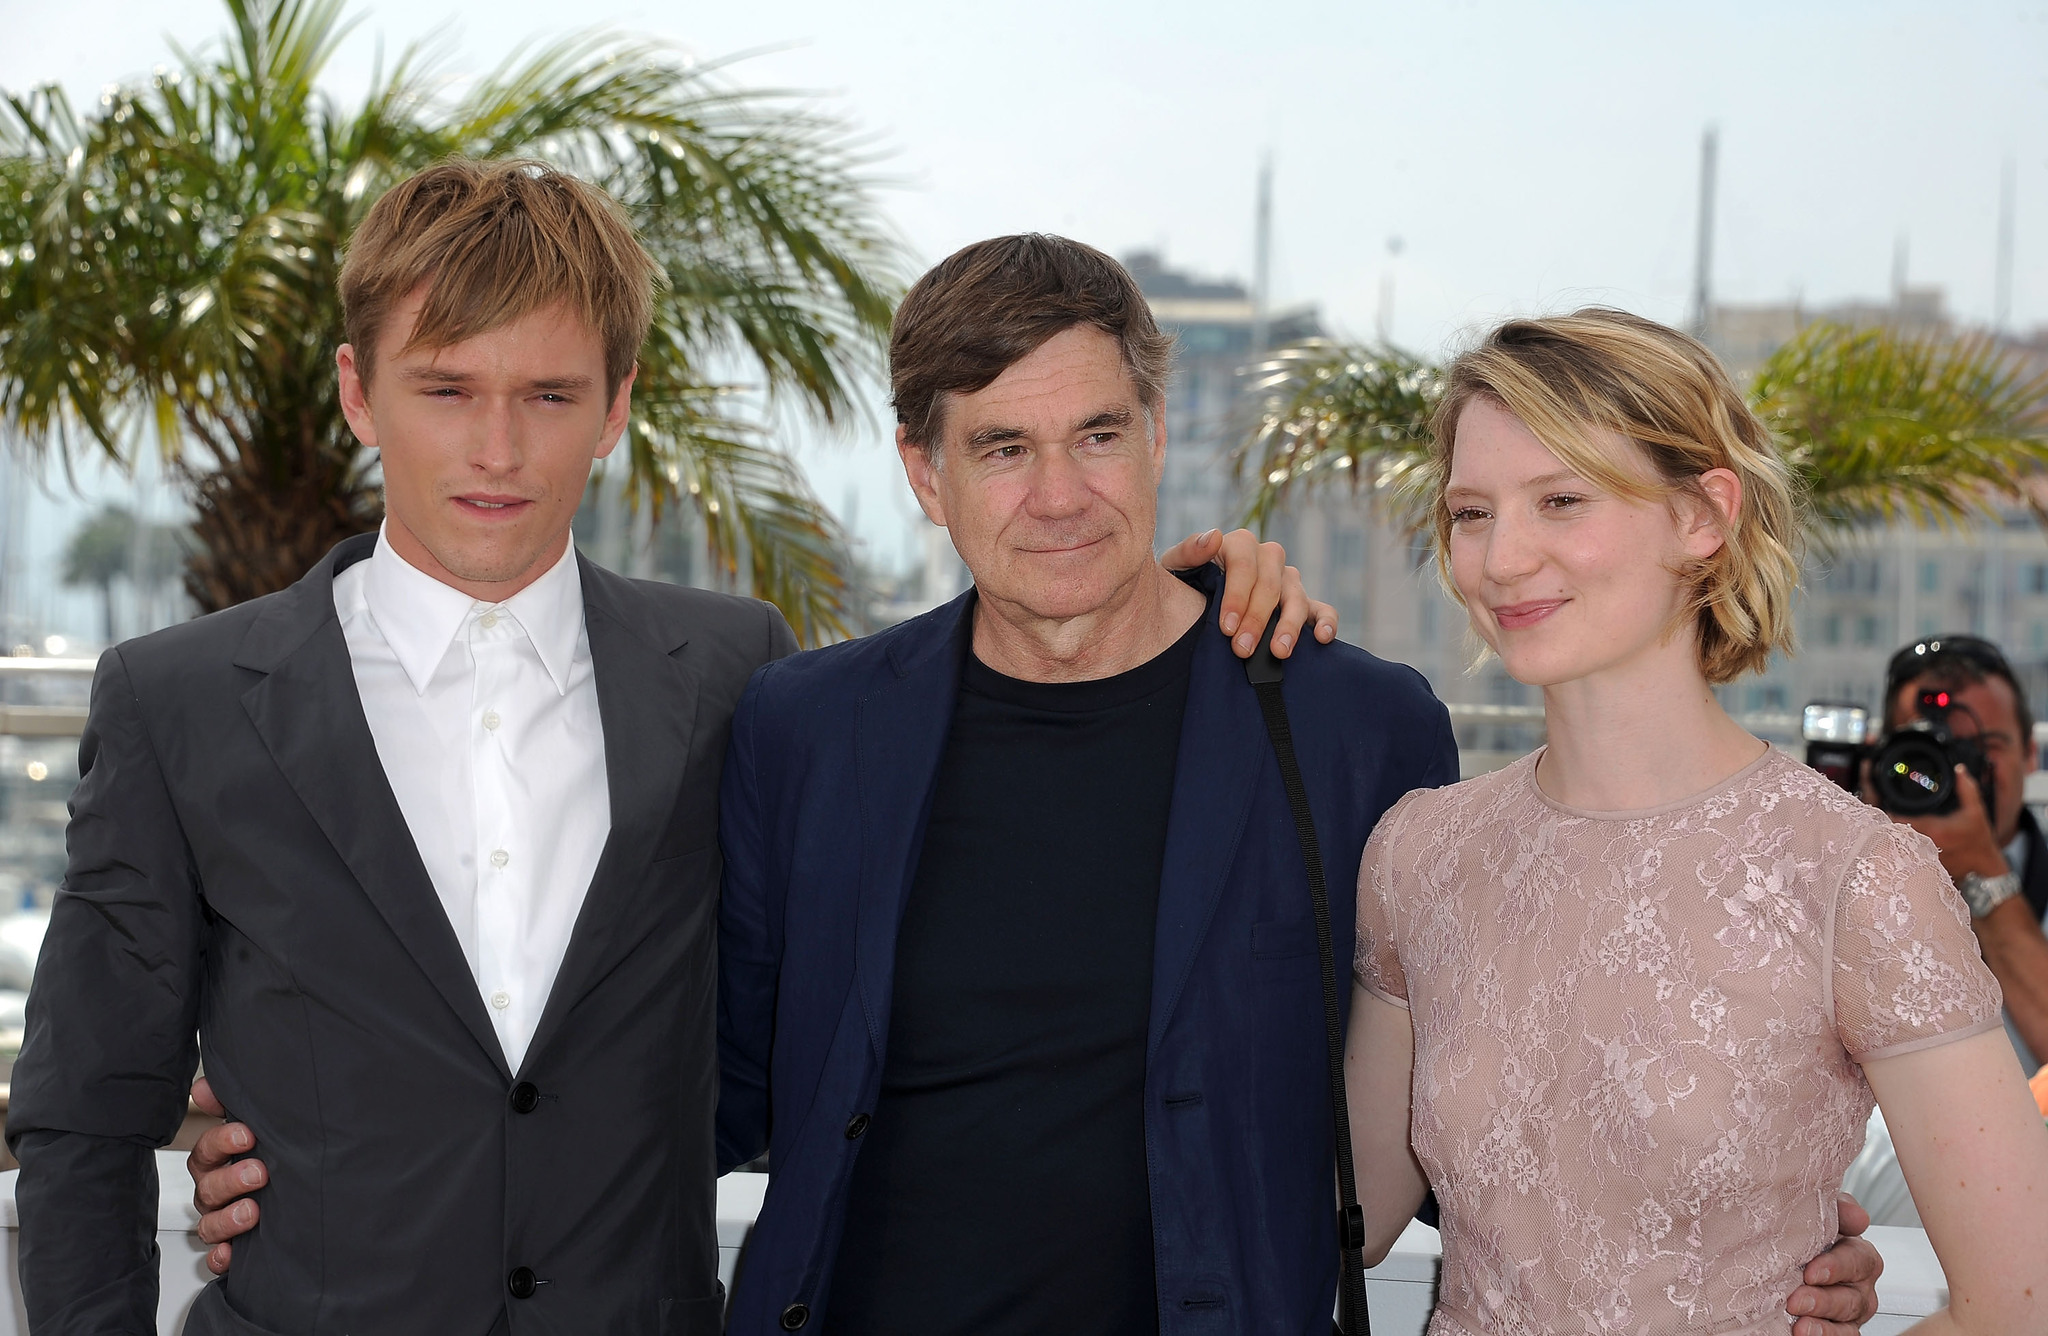 Gus Van Sant, Henry Hopper and Mia Wasikowska at event of Restless (2011)